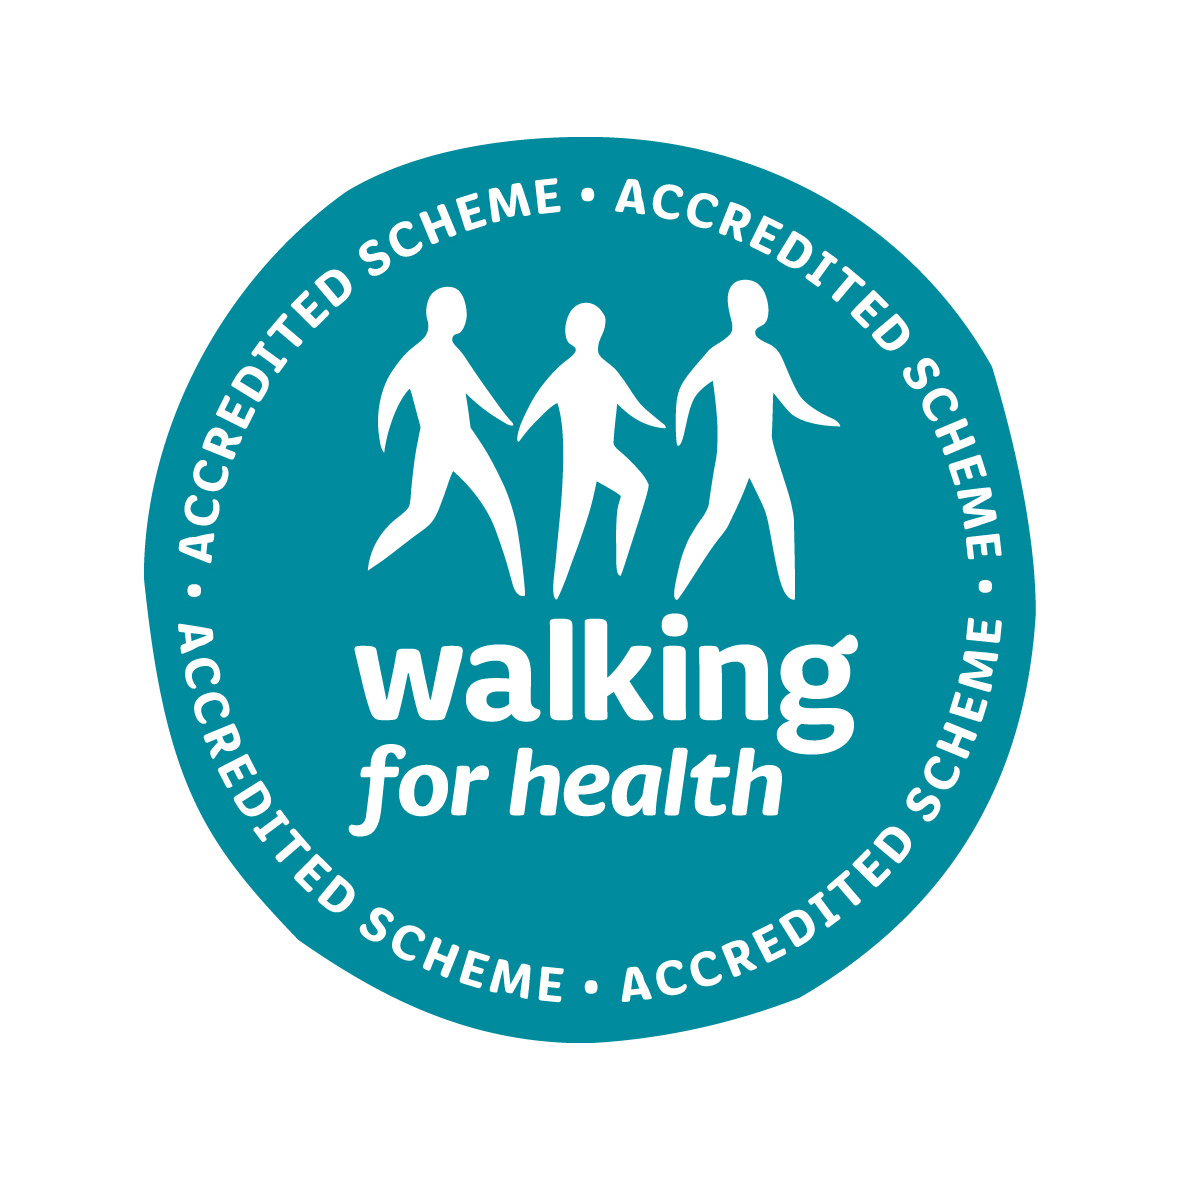 East Surrey Walking for Health.